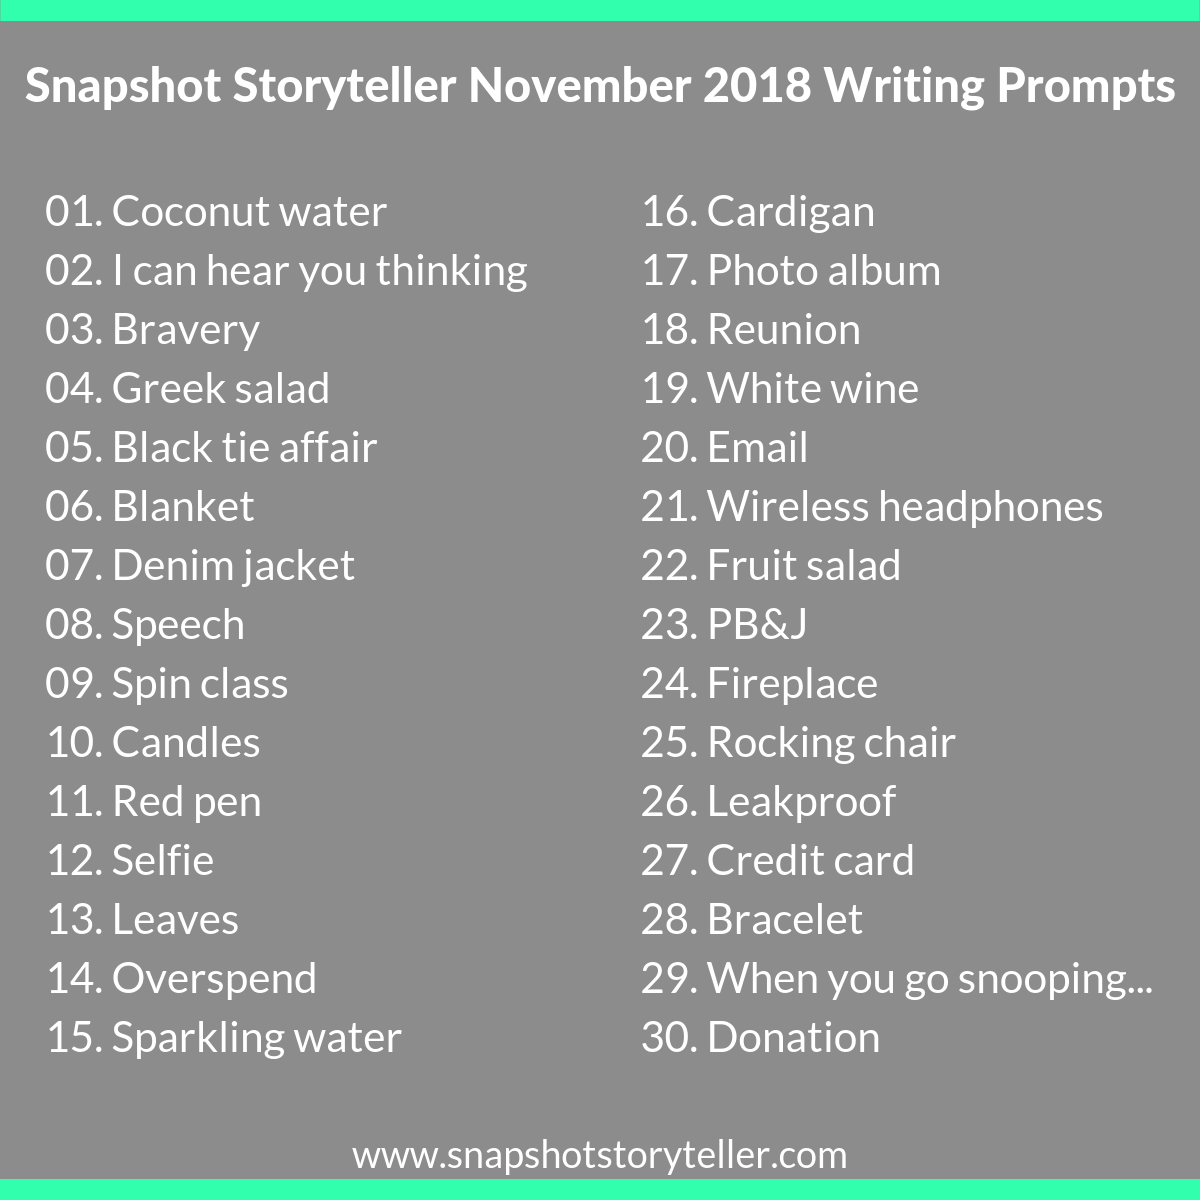 Snapshot Storyteller: November 2018 Writing Prompts | www.snapshotstoryteller.com #amwriting #snapshotstoryteller #creativestoryteller #creative #storyteller #creativewriter #IWrite #WriteOn #writingprompt #writingprompts